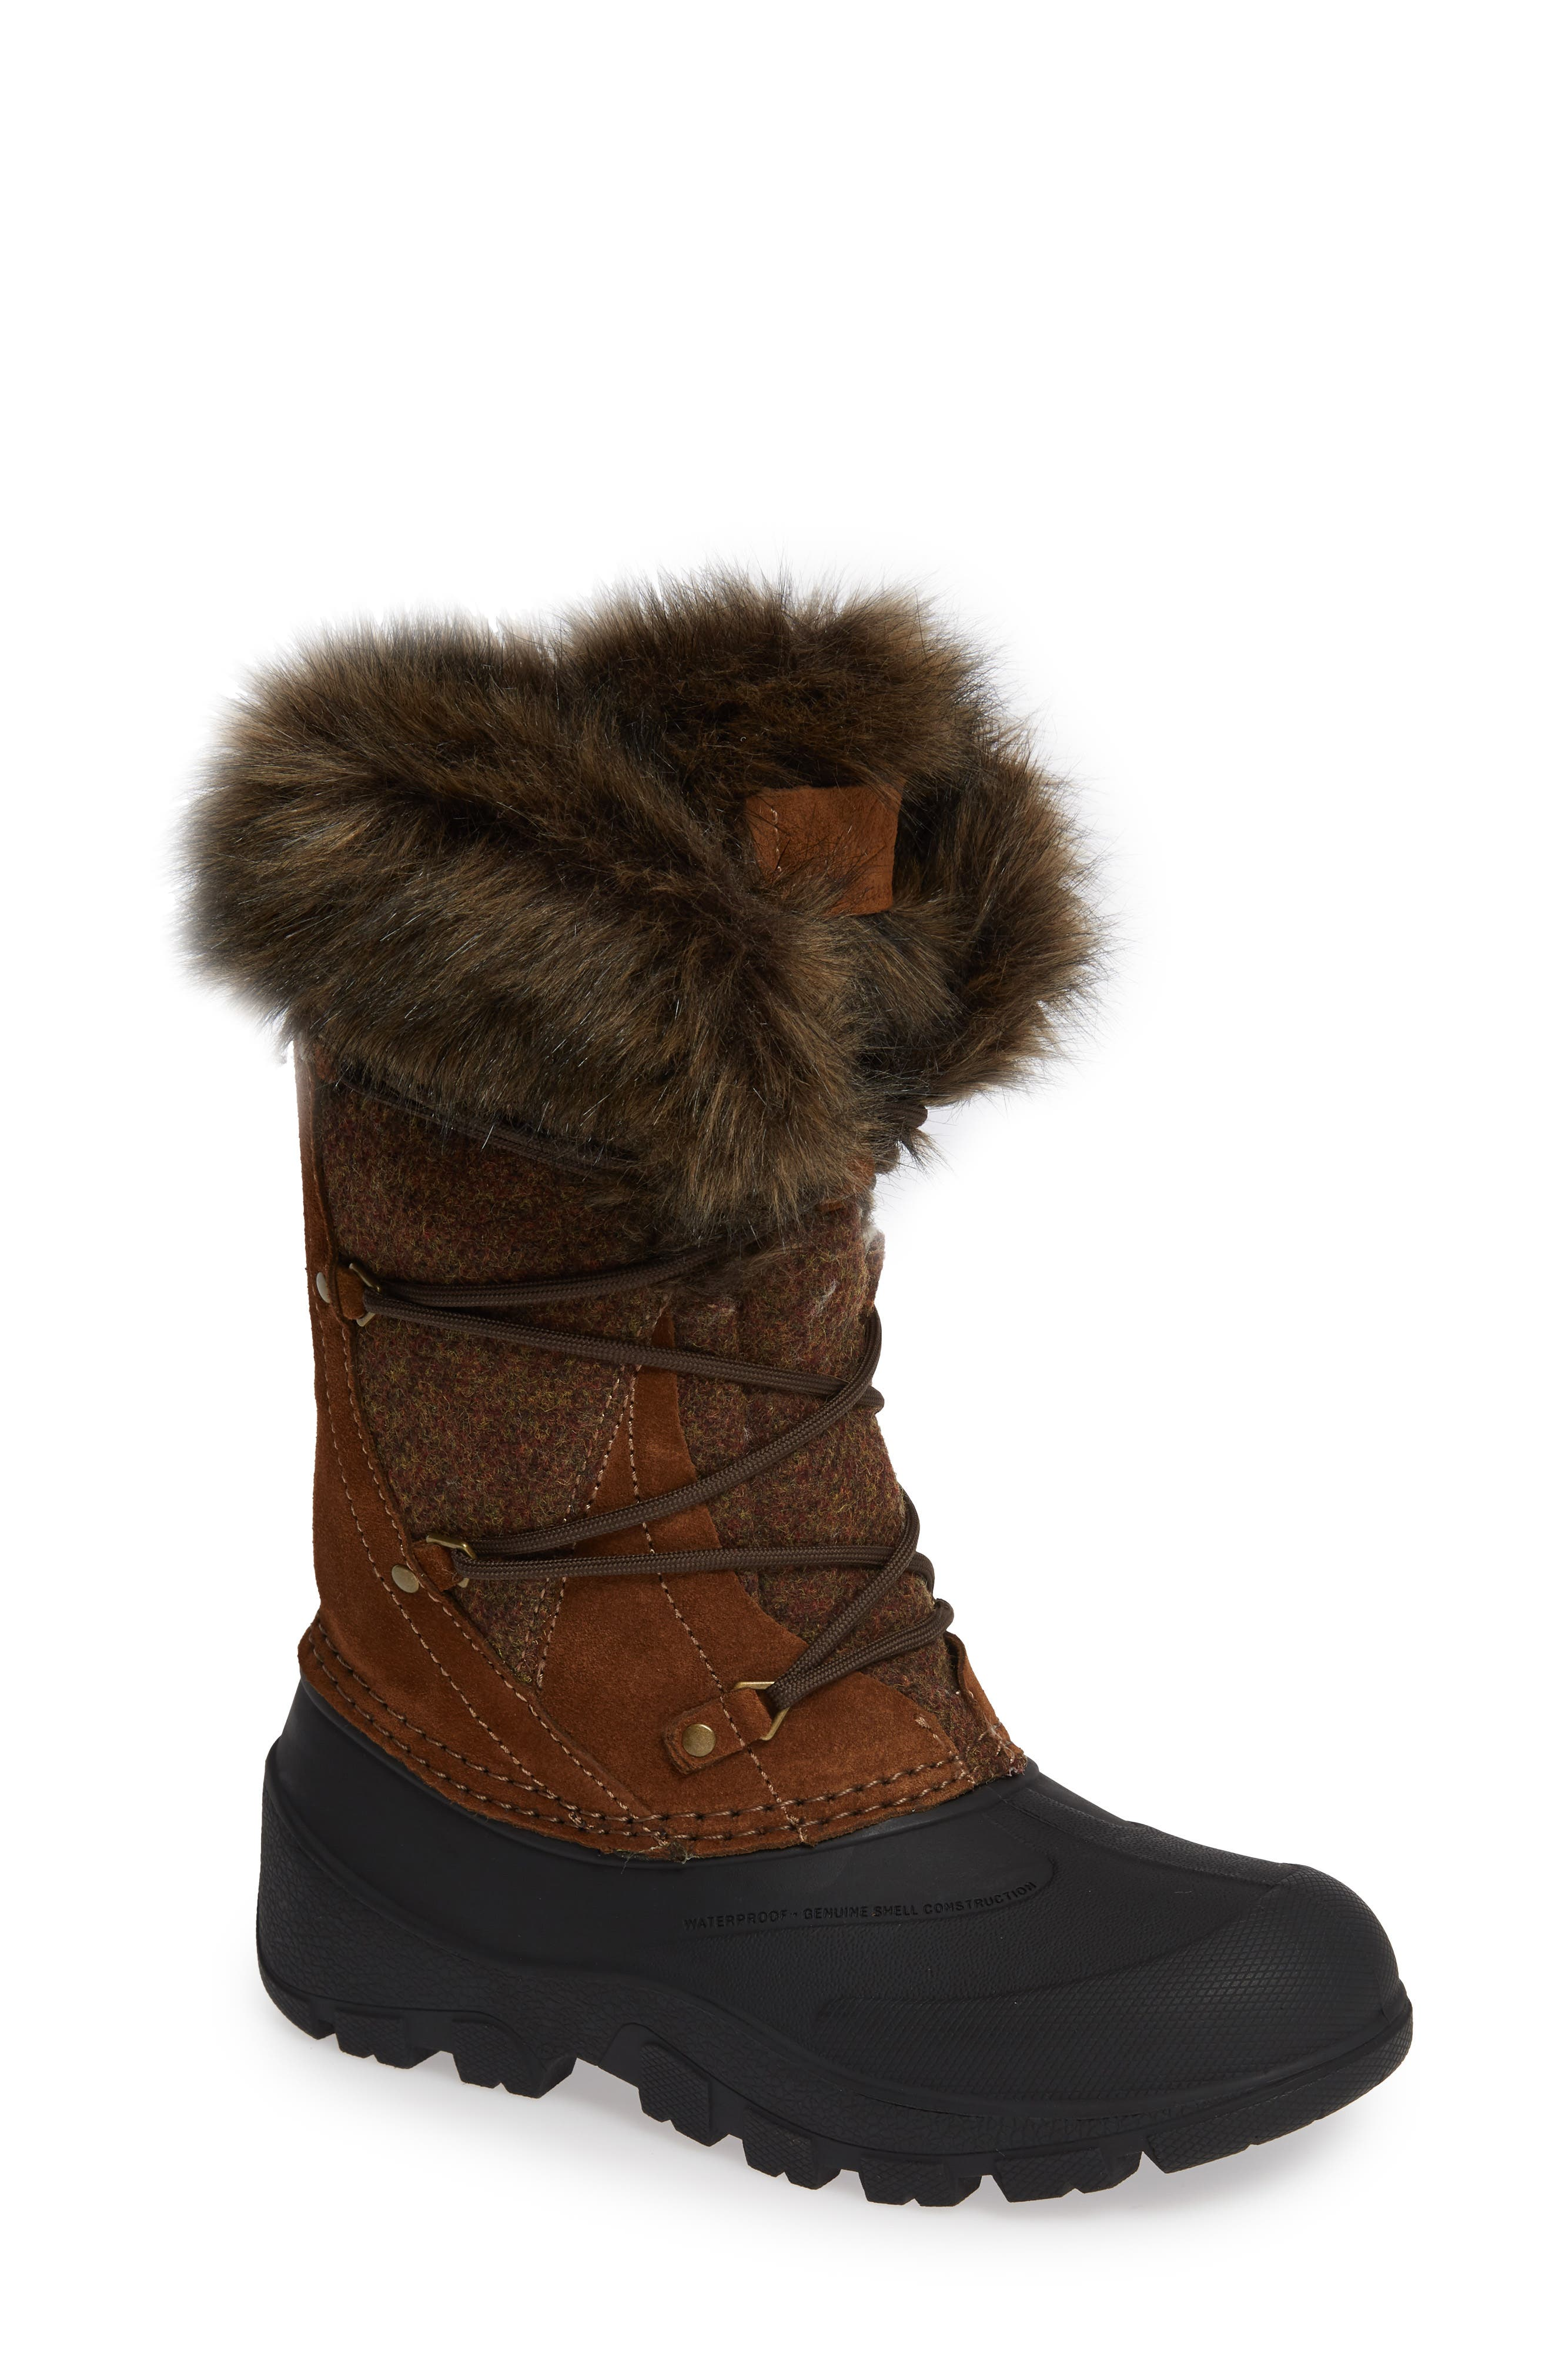 Ice Cougar Waterproof Knee High Winter Boot with Faux Fur Trim,                             Main thumbnail 1, color,                             DACHSHUND WOOL